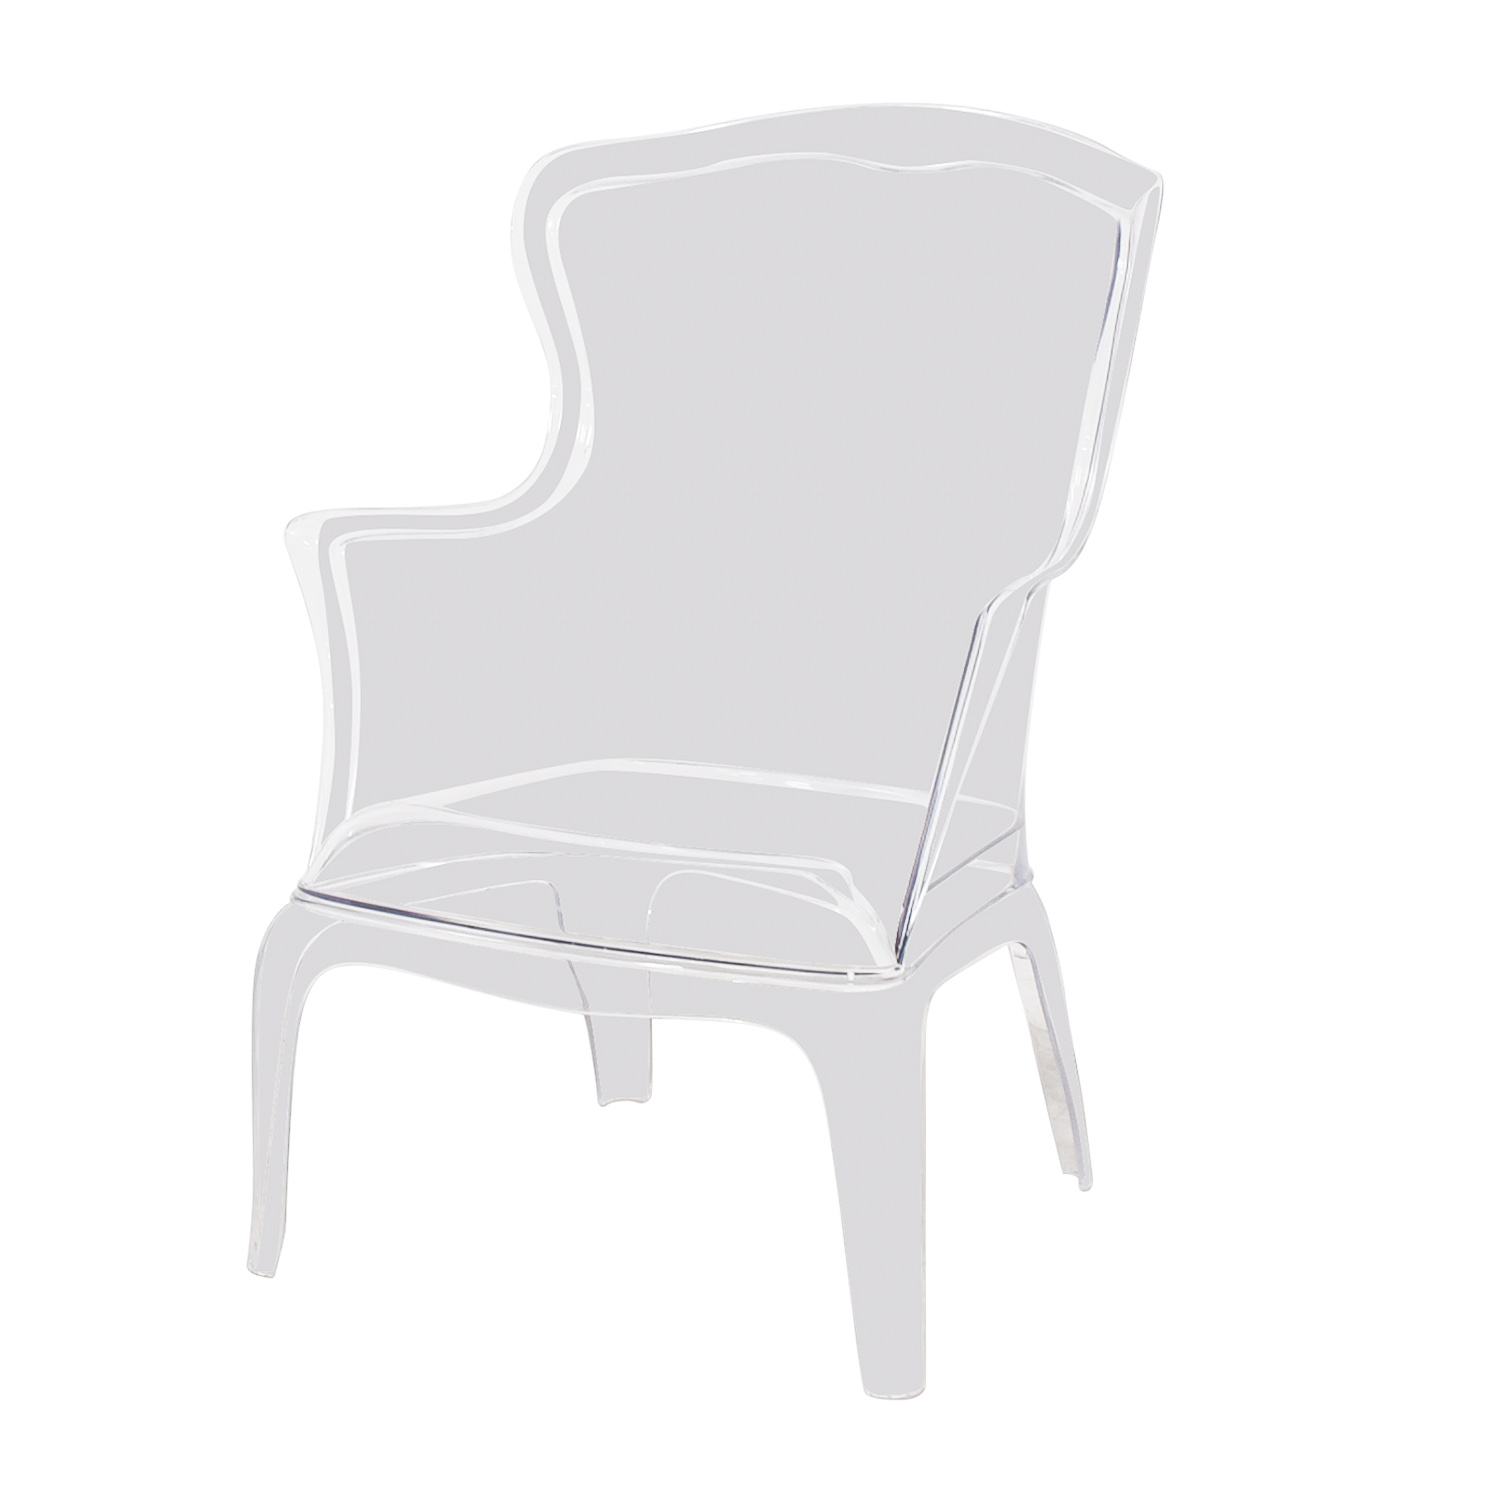 76% OFF   Zuo Modern Zuo Modern Transparent Vision Chair / Chairs